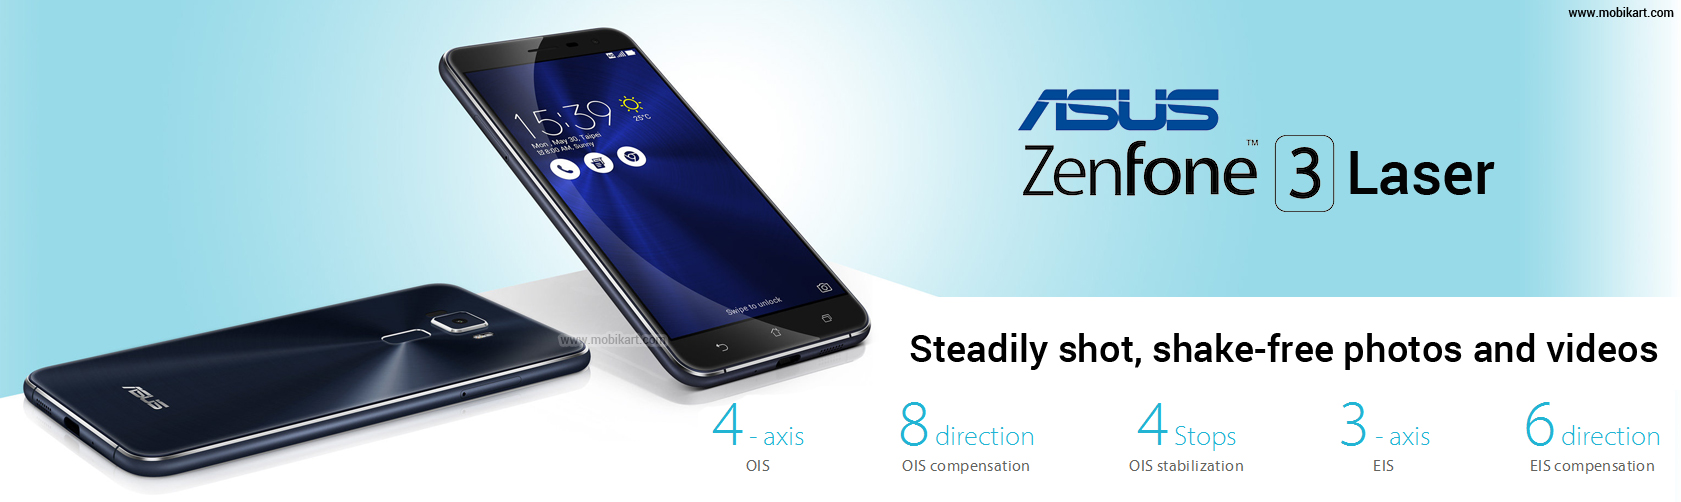 Asus Zenfone 3 Laser Is Now Official In India for Rs 18,999